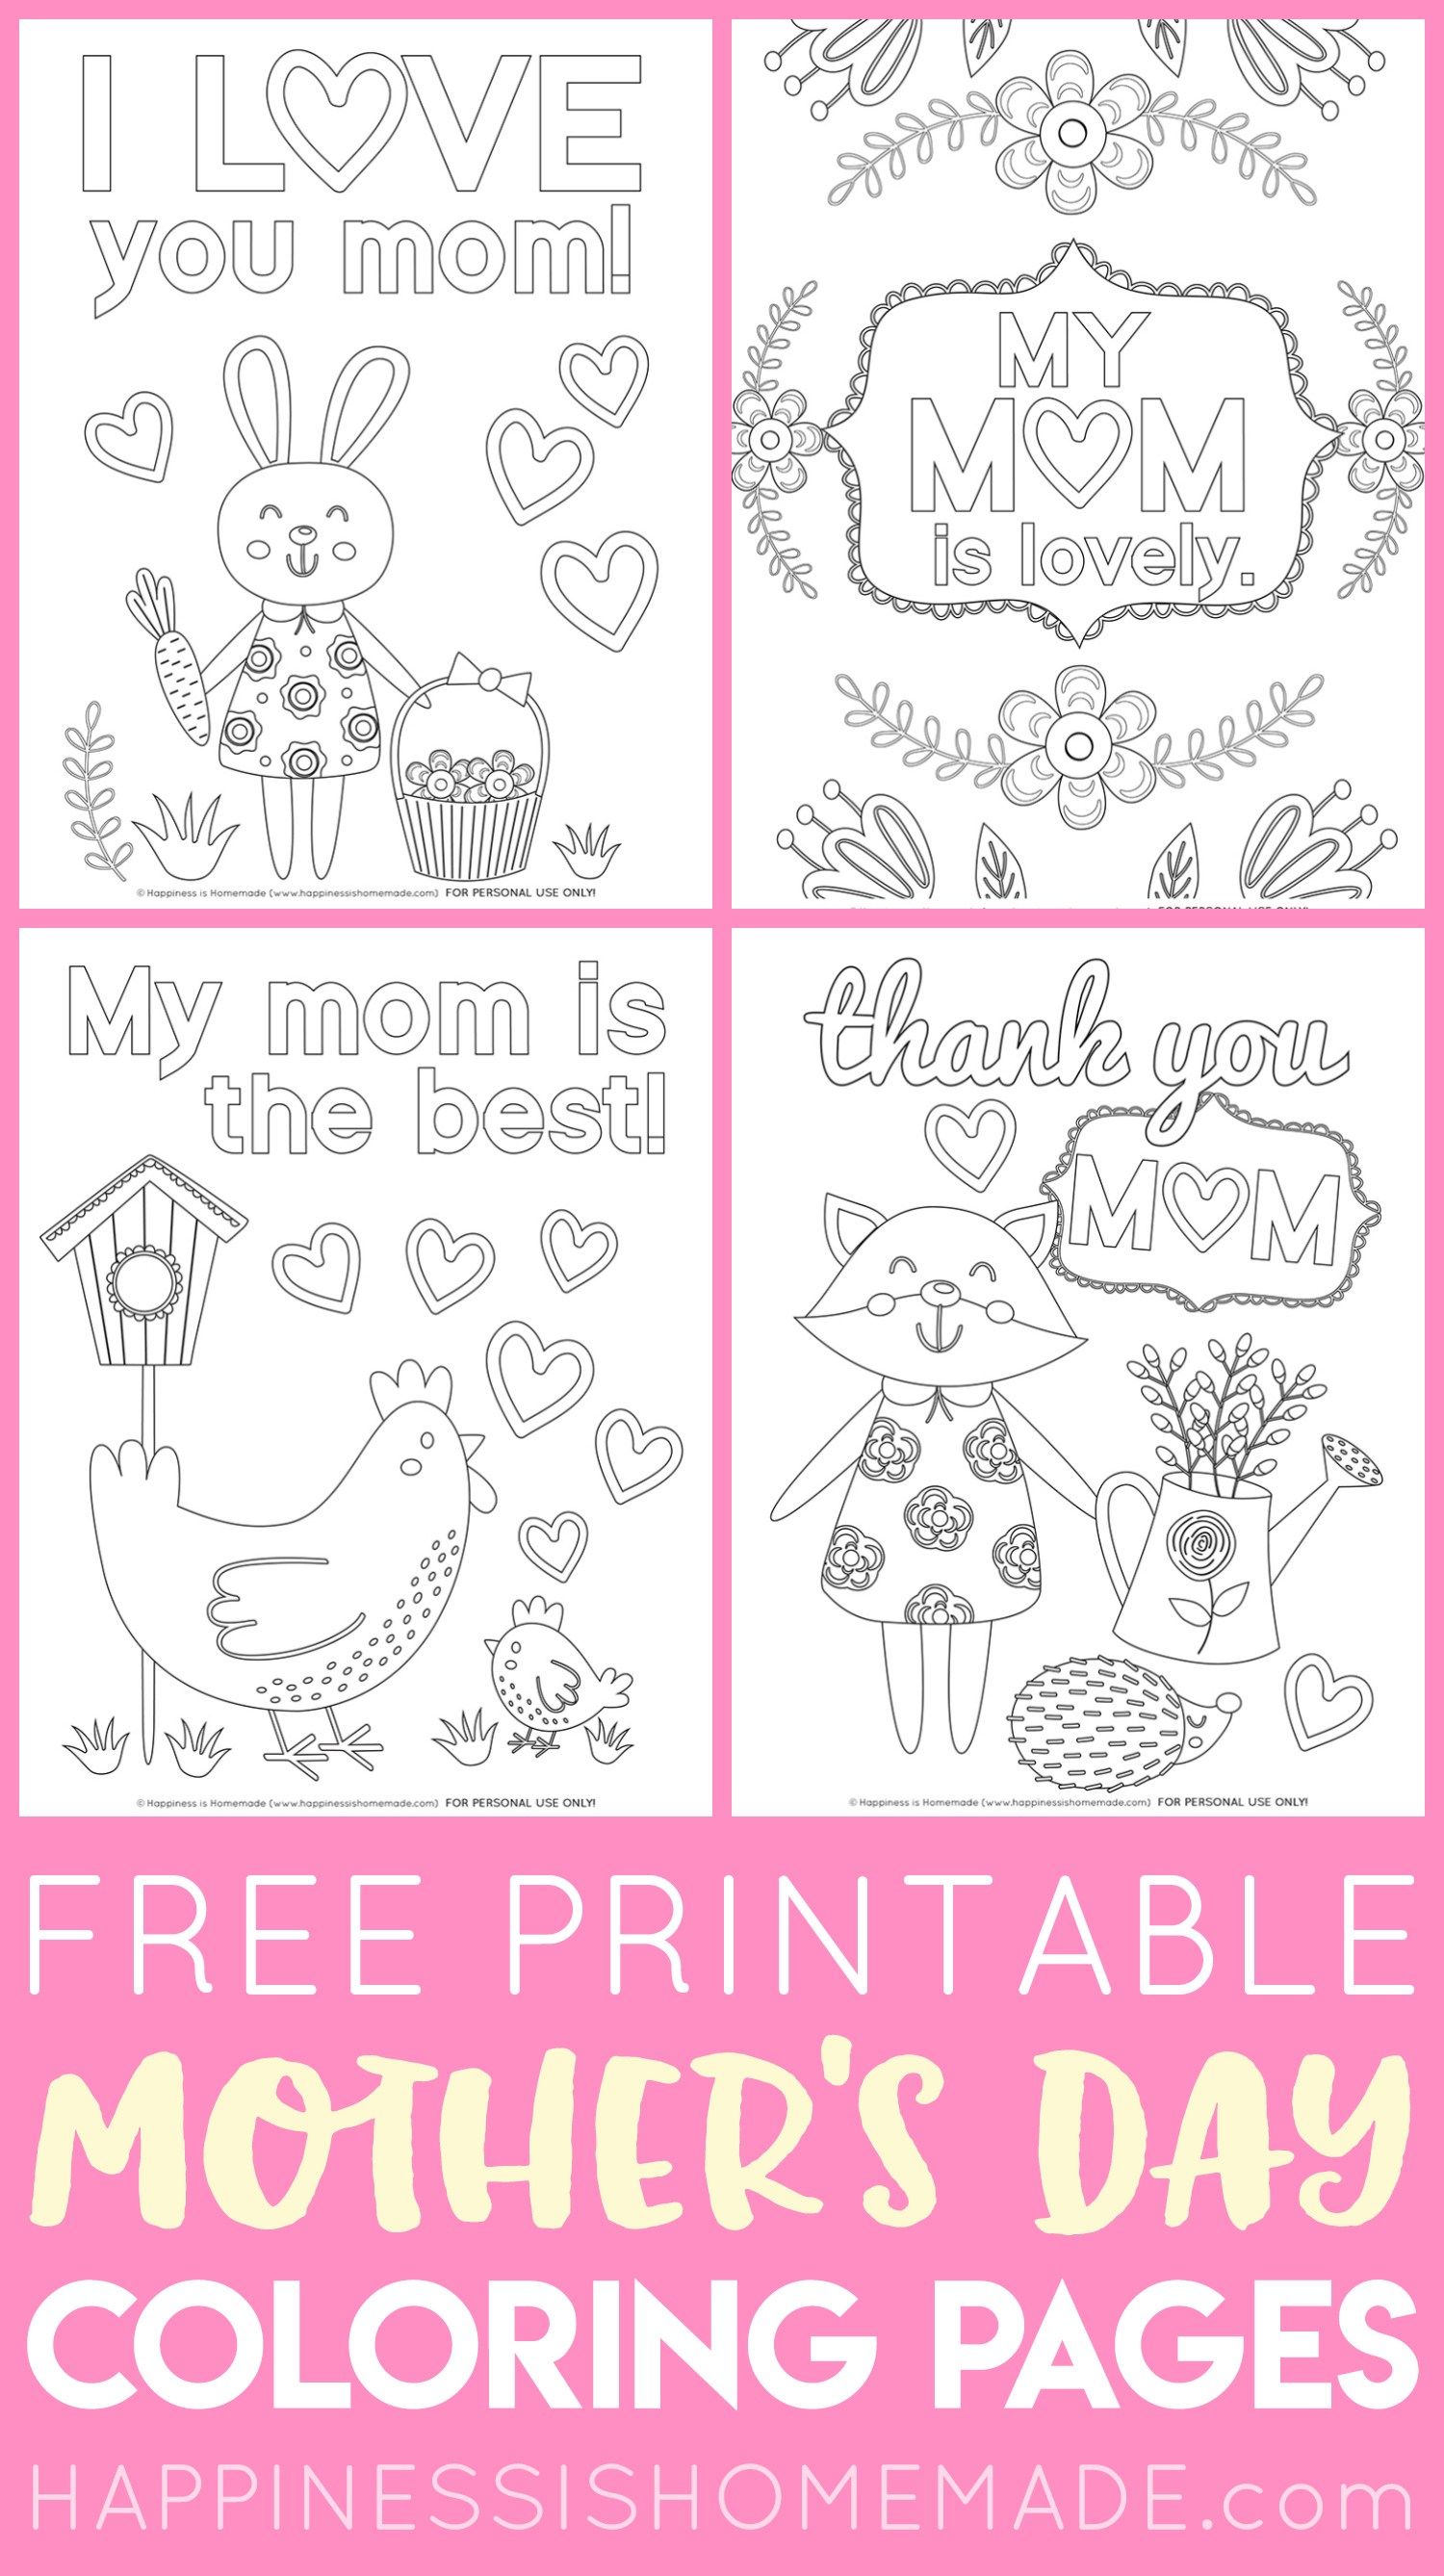 Printable Mother's Day coloring pages